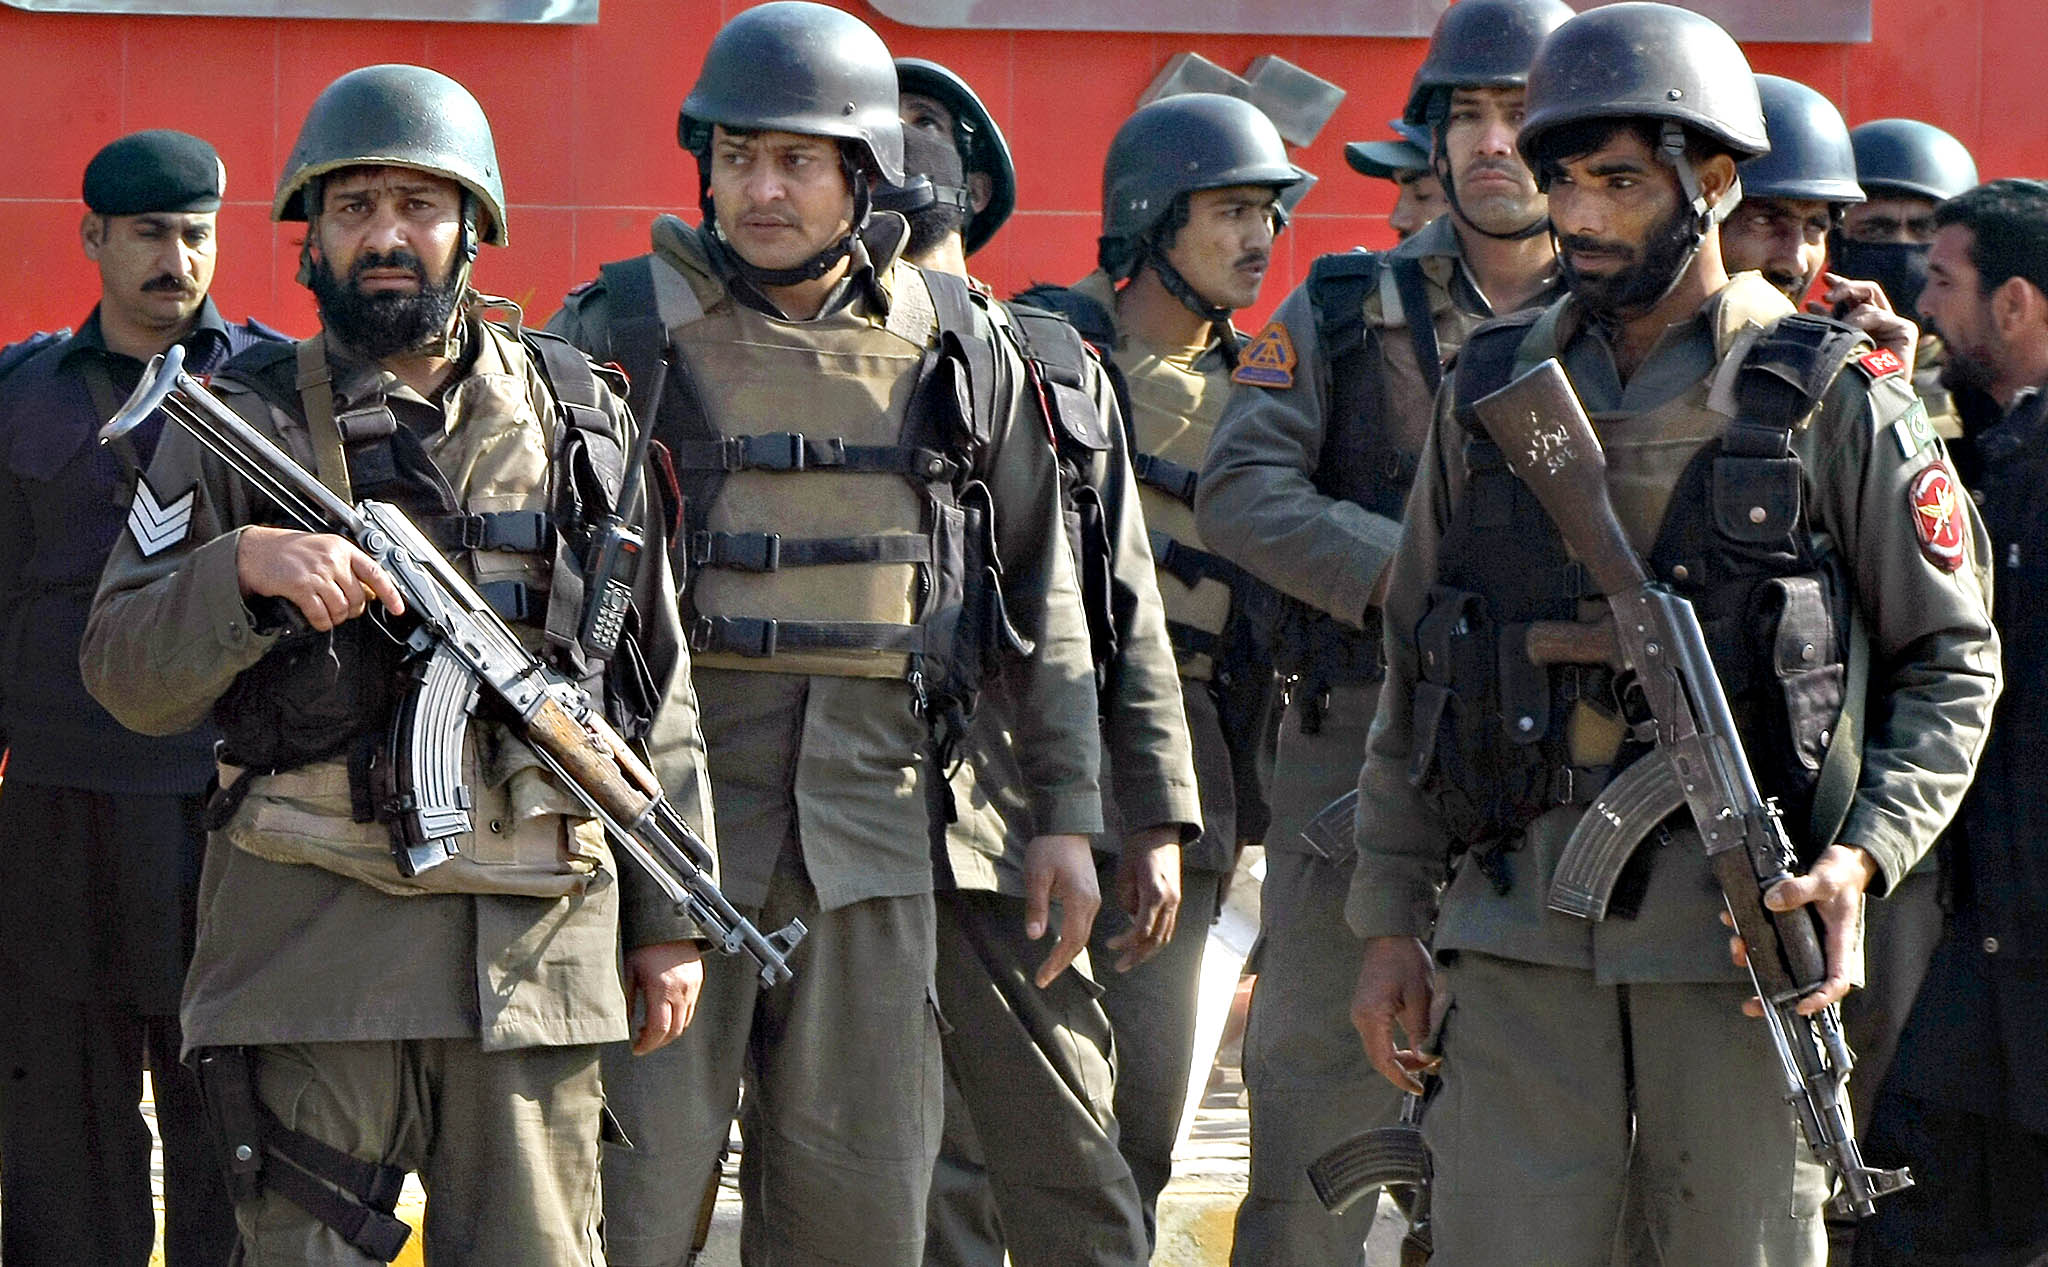 Pakistani troops arrive at Bacha Khan University in Charsadda town, some 35 kilometers (21 miles) outside the city of Peshawar, Pakistan, Wednesday, Jan. 20, 2016. Gunmen stormed Bacha Khan University named after the founder of an anti-Taliban political party in the country's northwest Wednesday